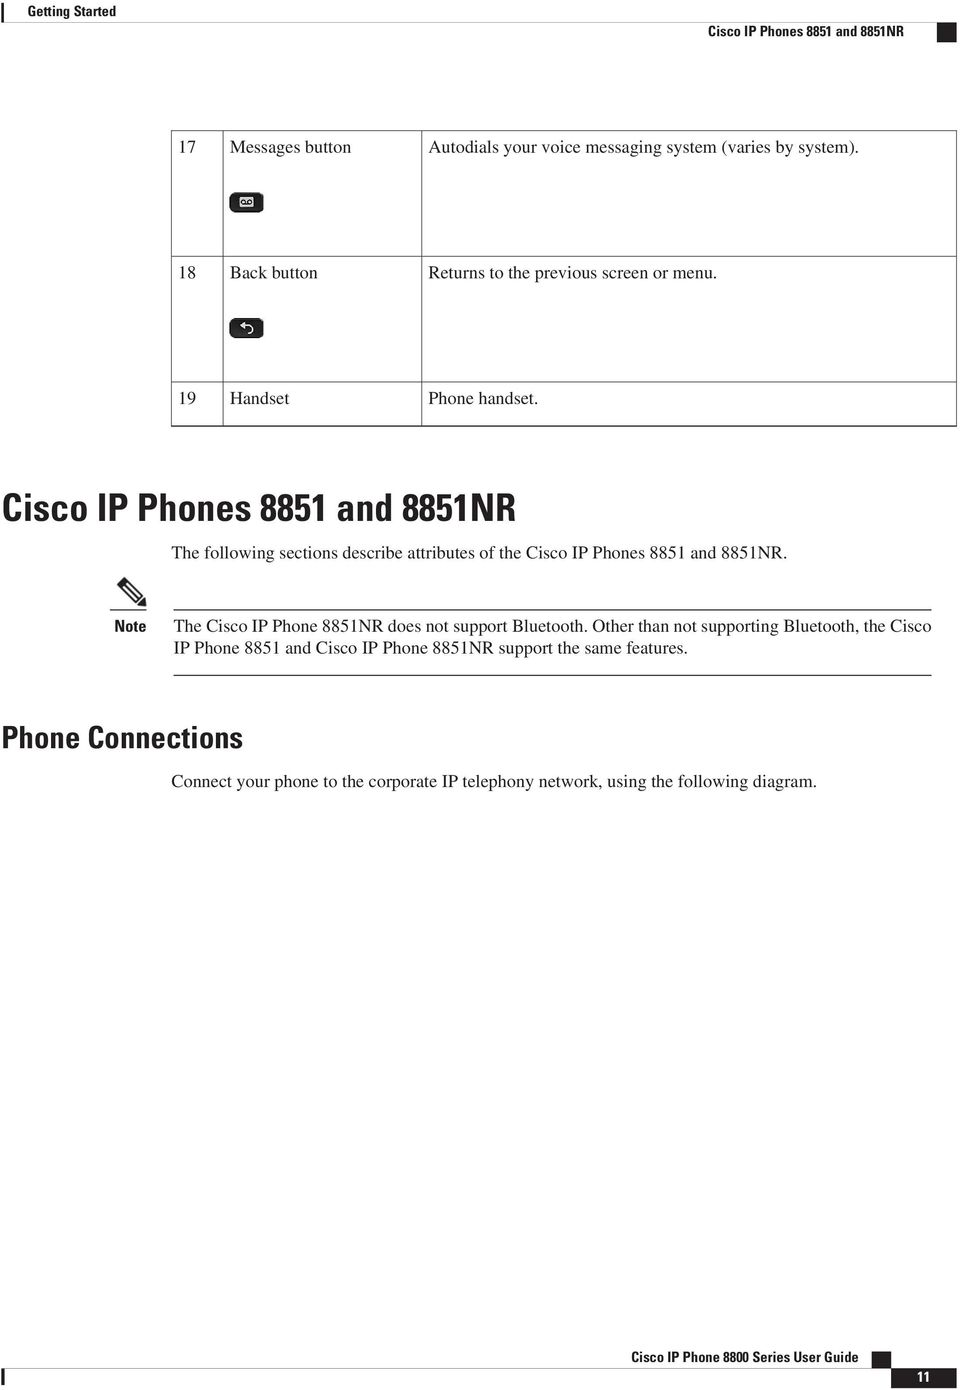 Cisco IP Phones 8851 and 8851NR The following sections describe attributes of the Cisco IP Phones 8851 and 8851NR.